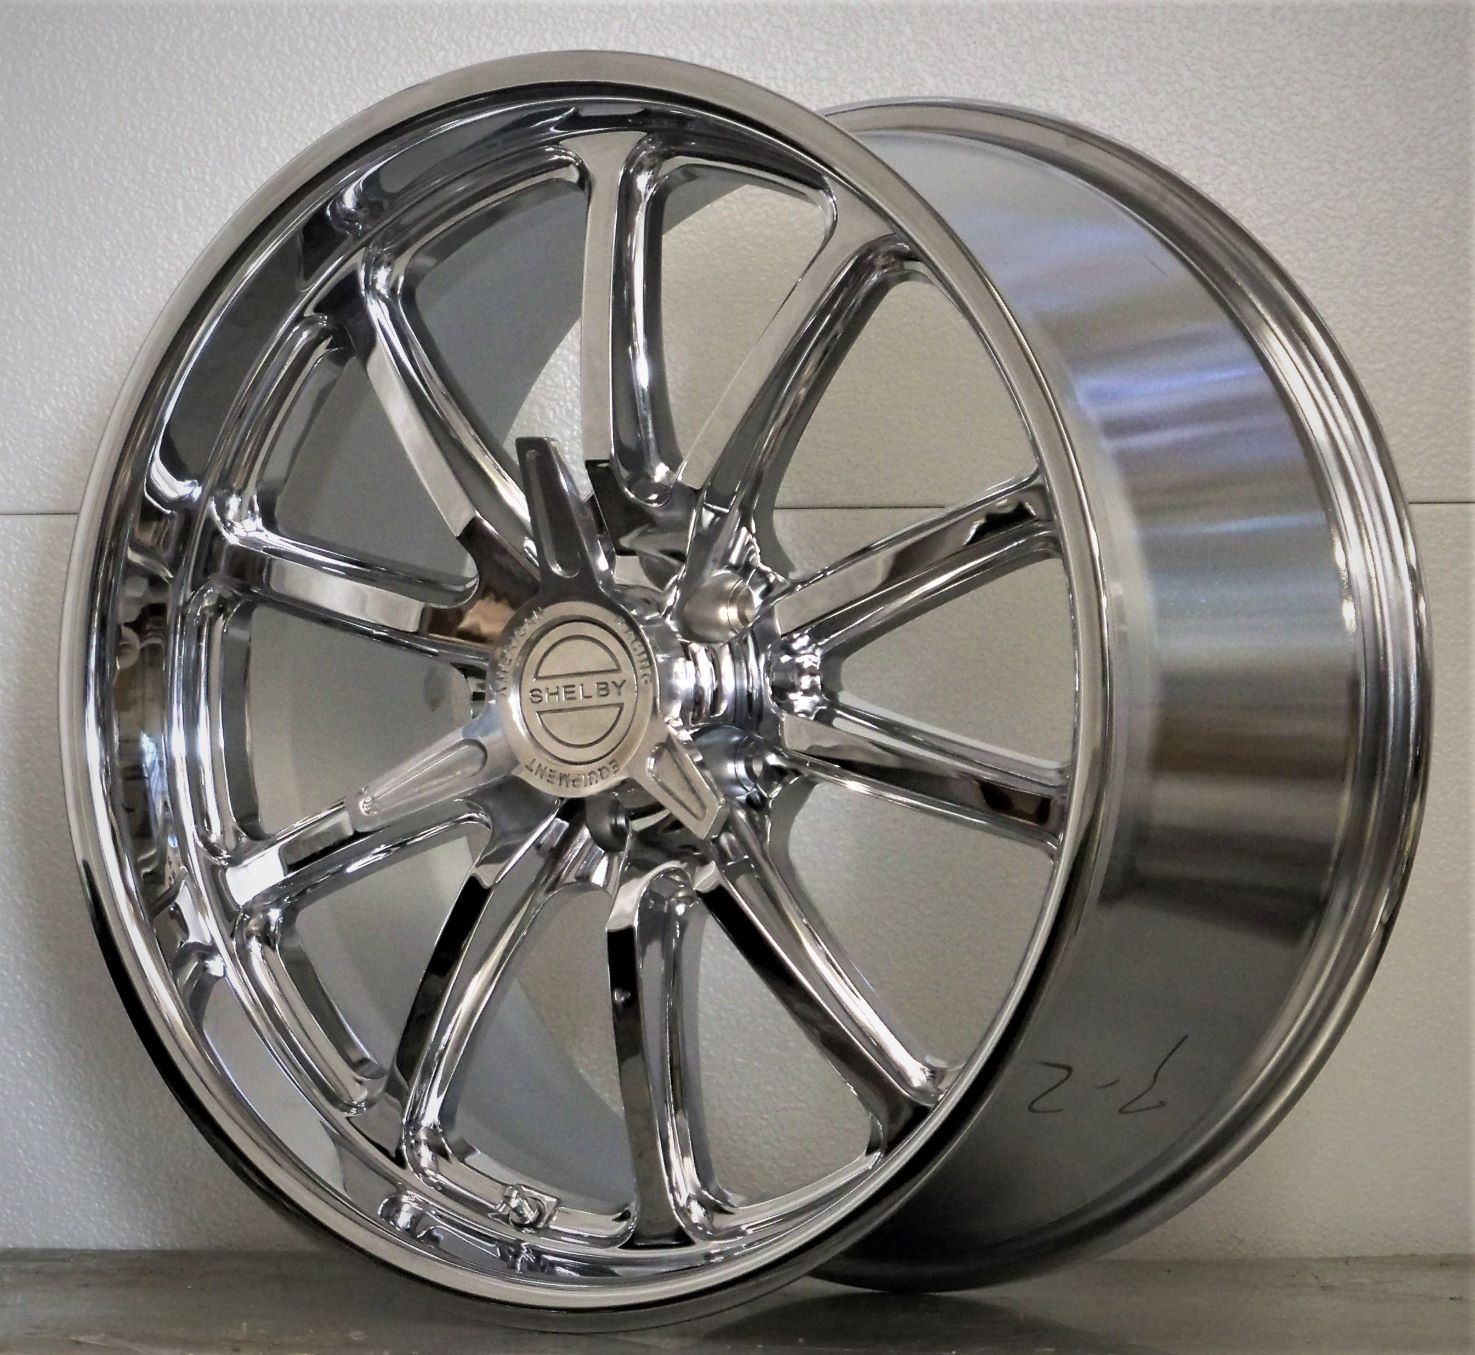 20s set of 4 RSC US Mags Shelby spinners chrome 05-20